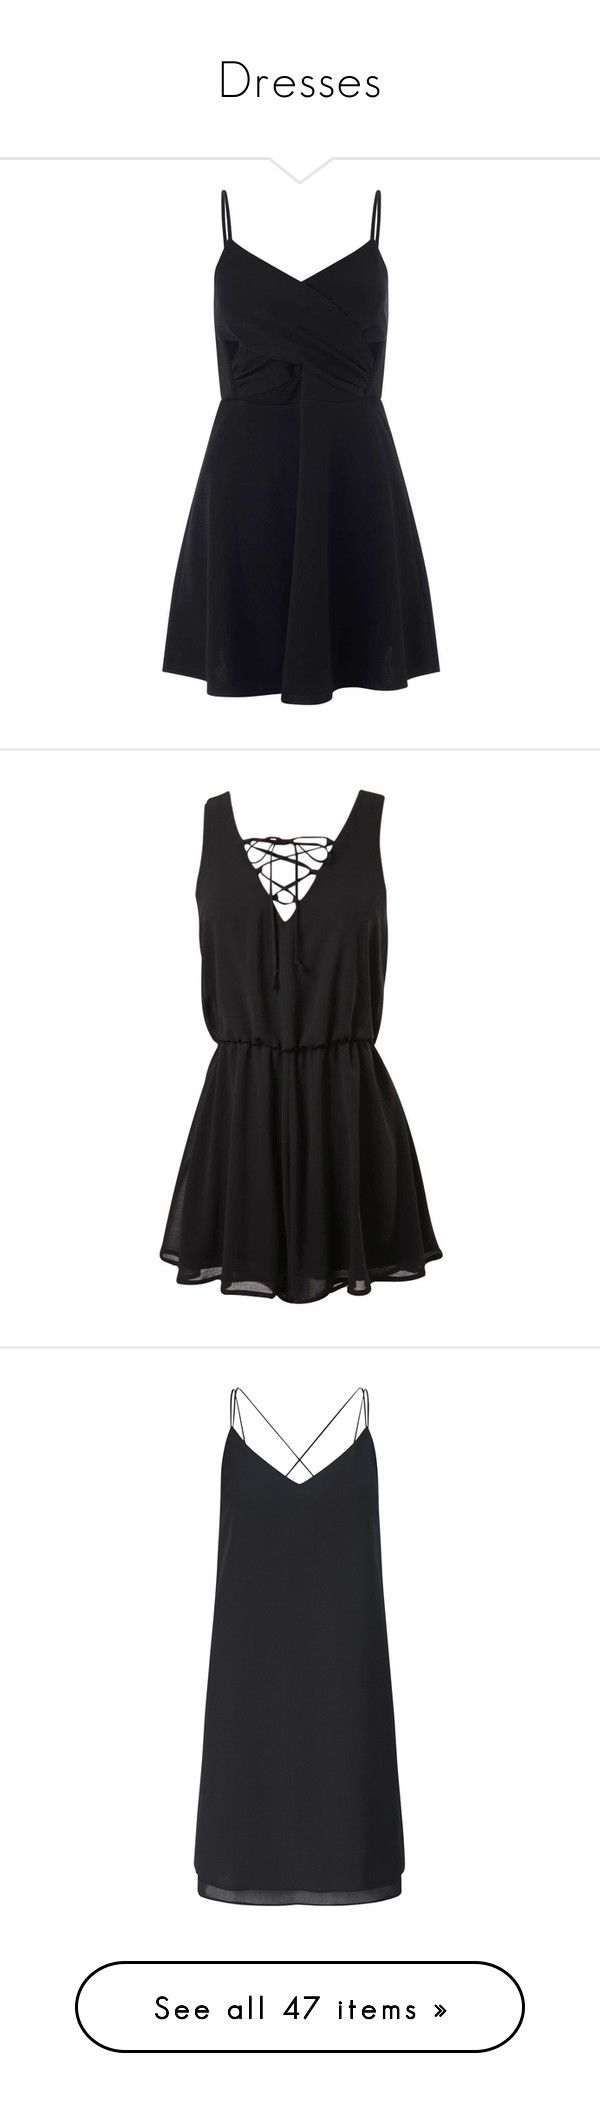 """""""Dresses"""" by fivesecondsofphan ❤ liked on Polyvore featuring dresses, black, petite, wrap dress, skater dress, cut out dress, cutout dress, petite skater dress, jumpsuits and rompers"""